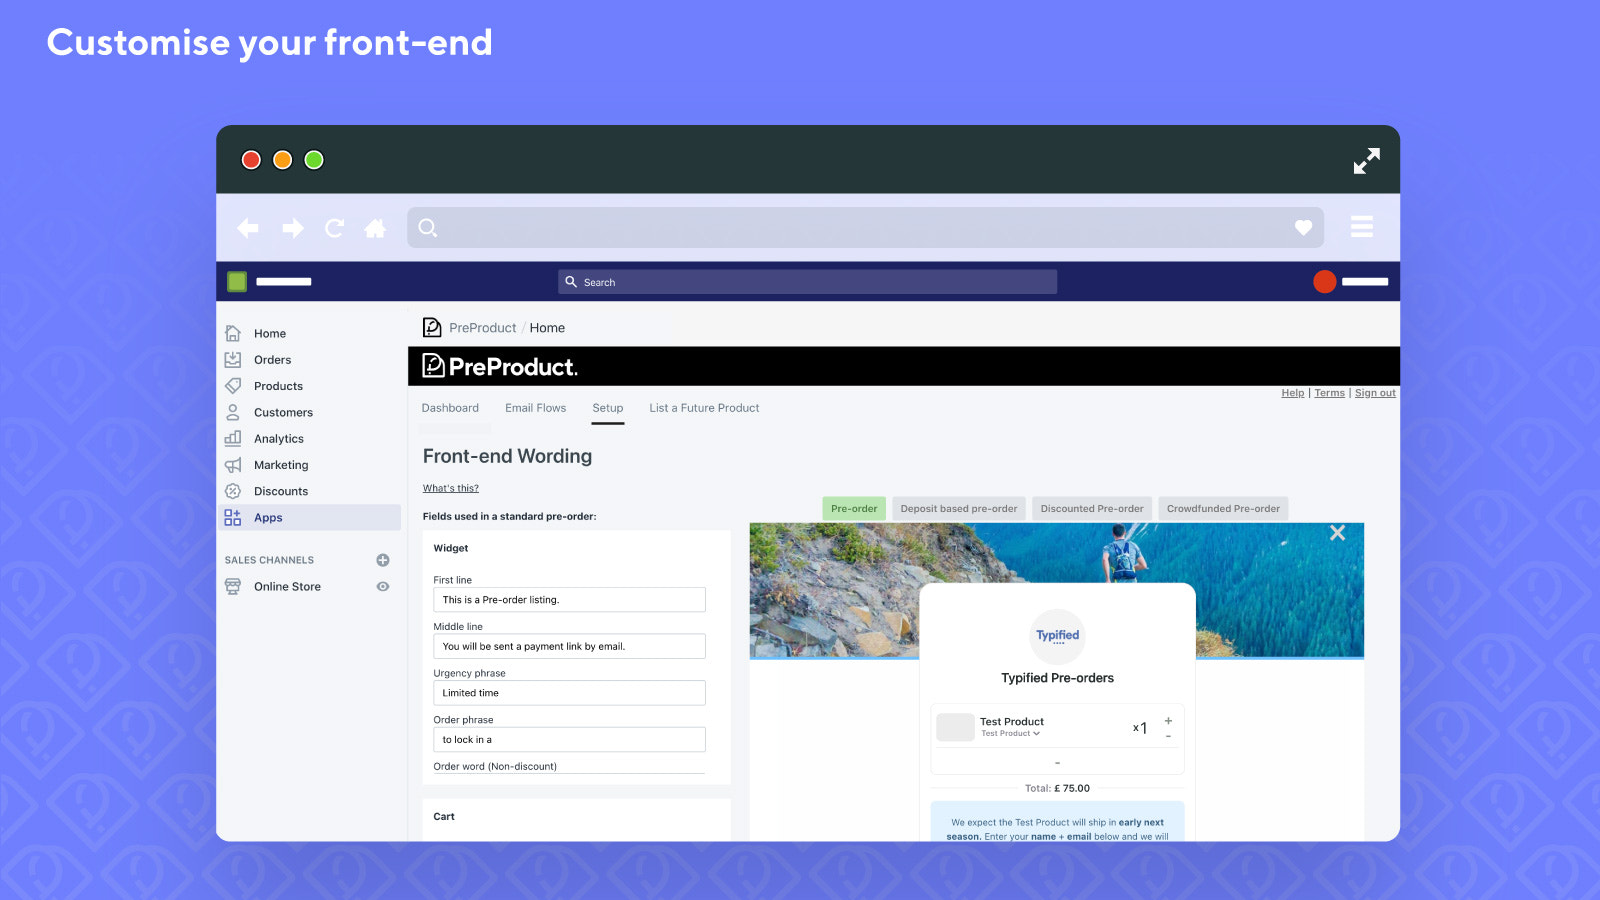 Customise your front-end